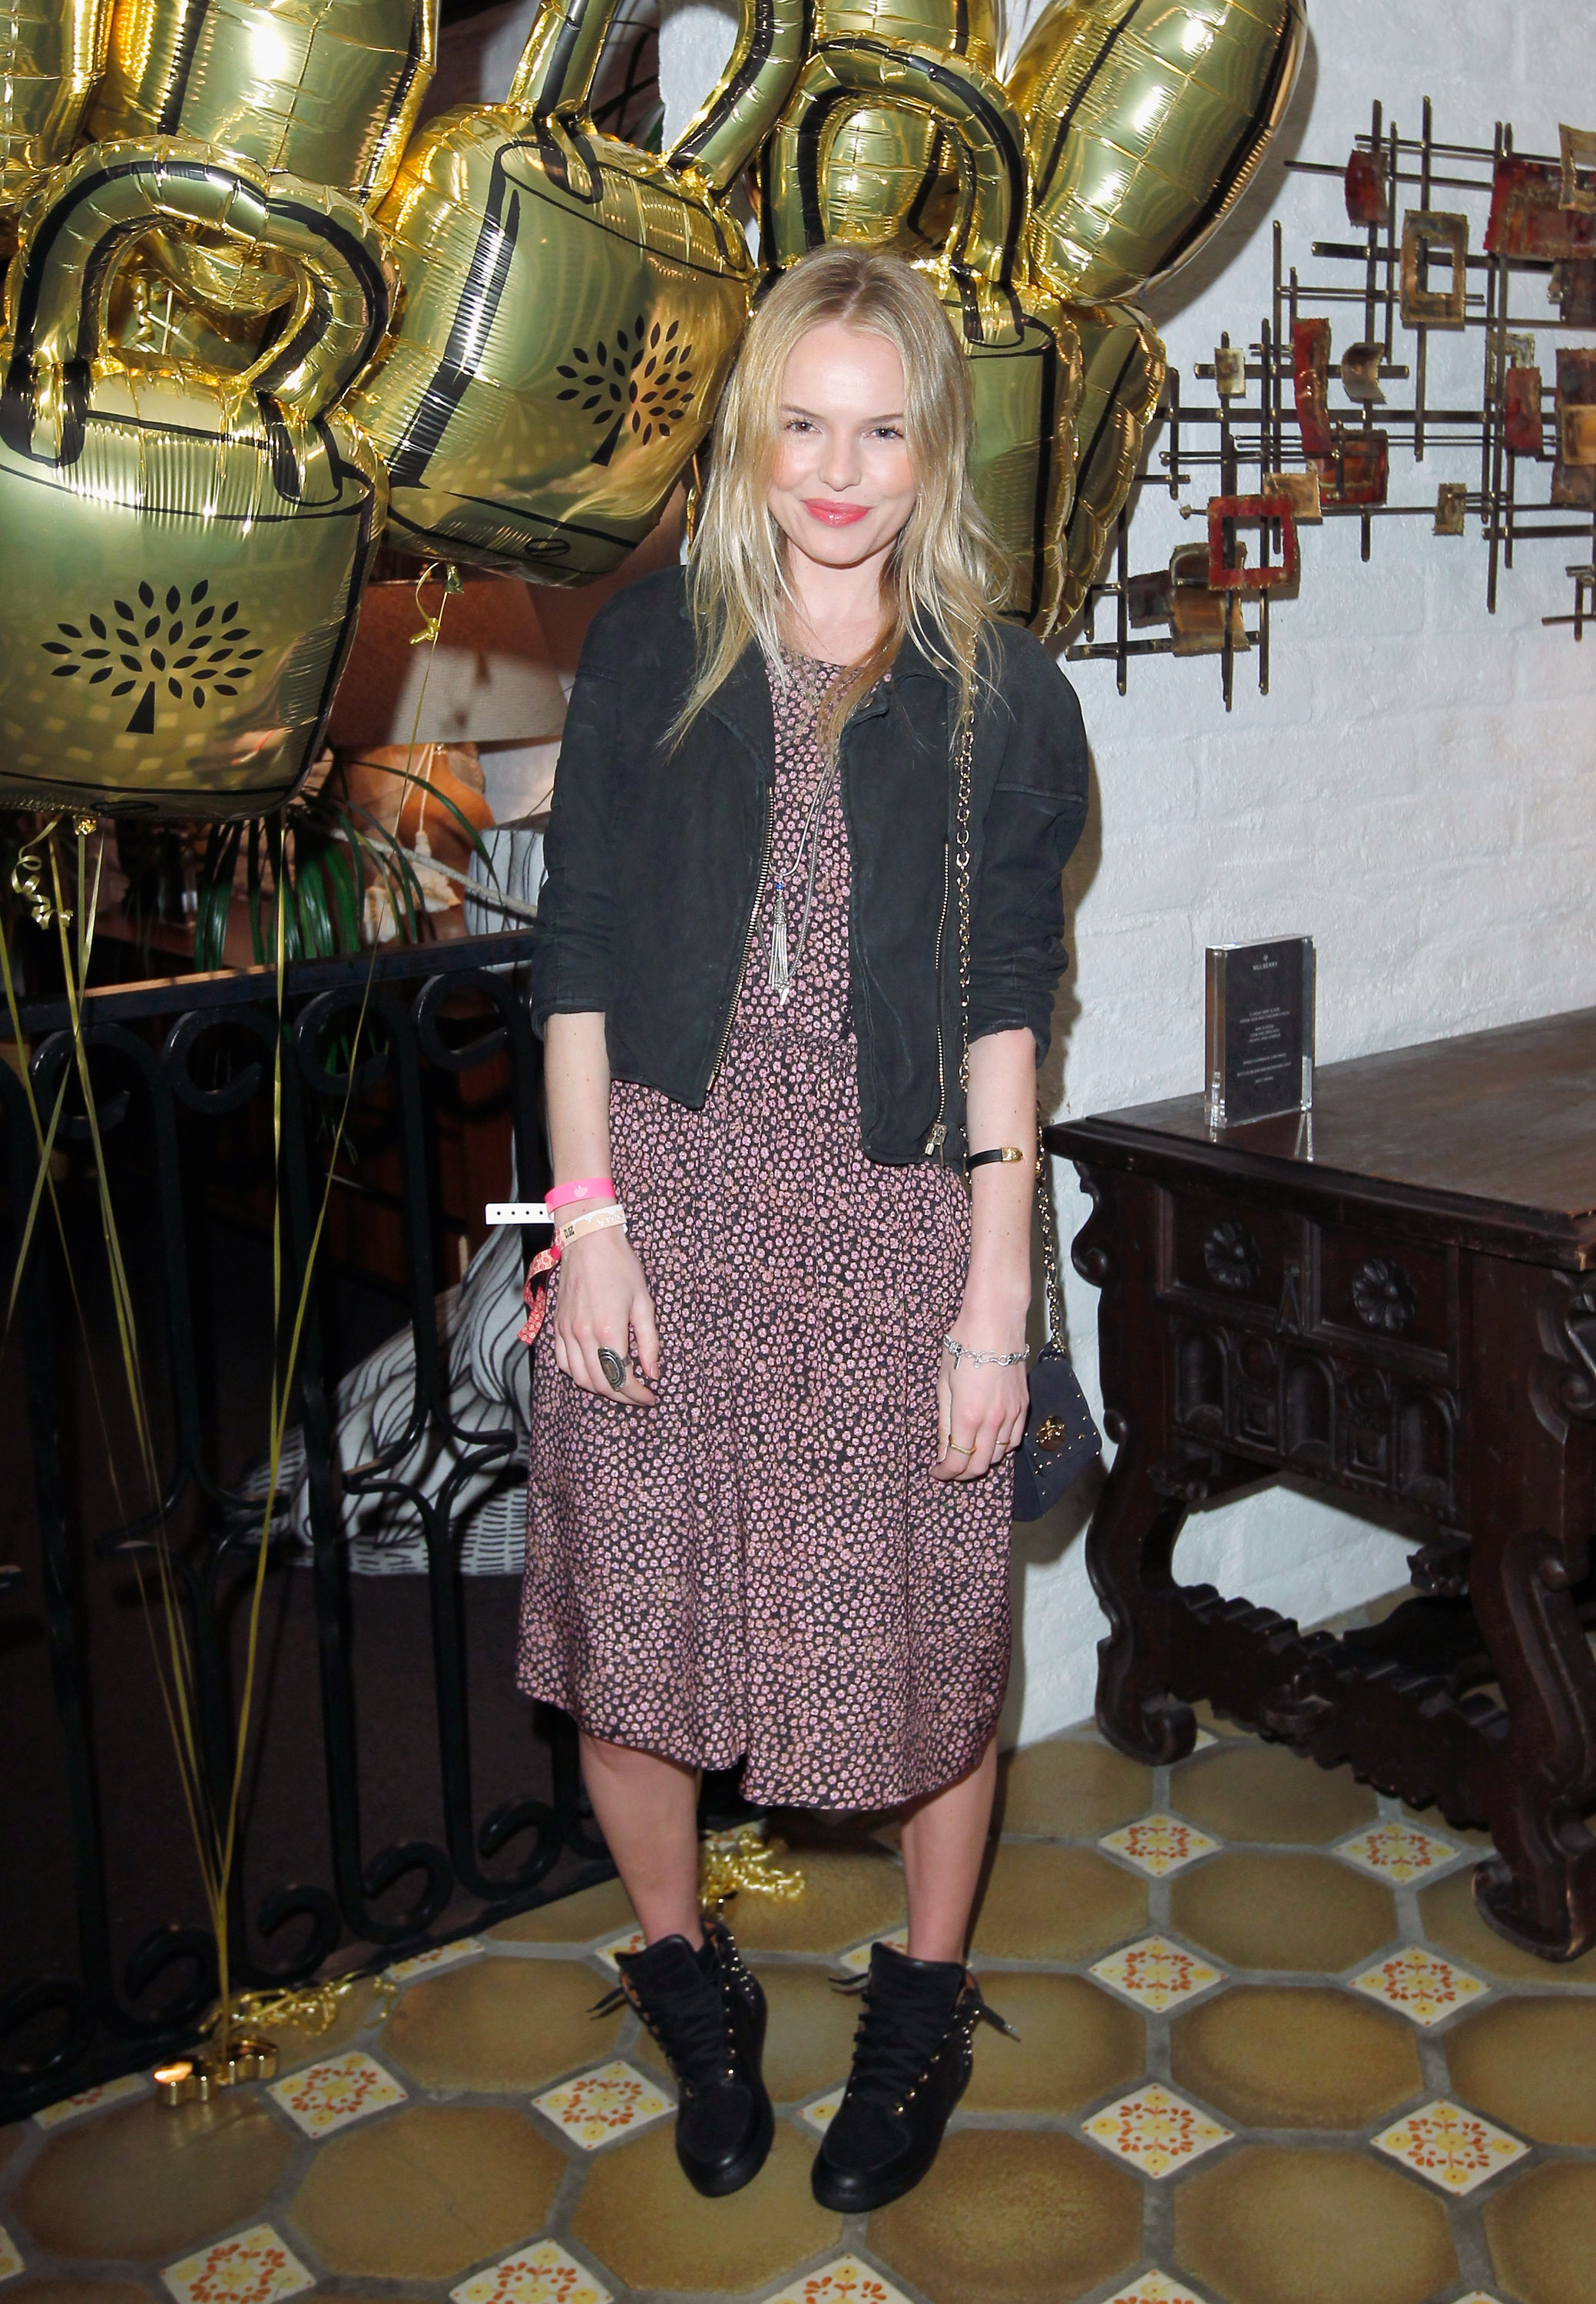 Kate Bosworth changed into a long dress to attend Mulberry's Coachella party at the Parker Palm Springs Friday.